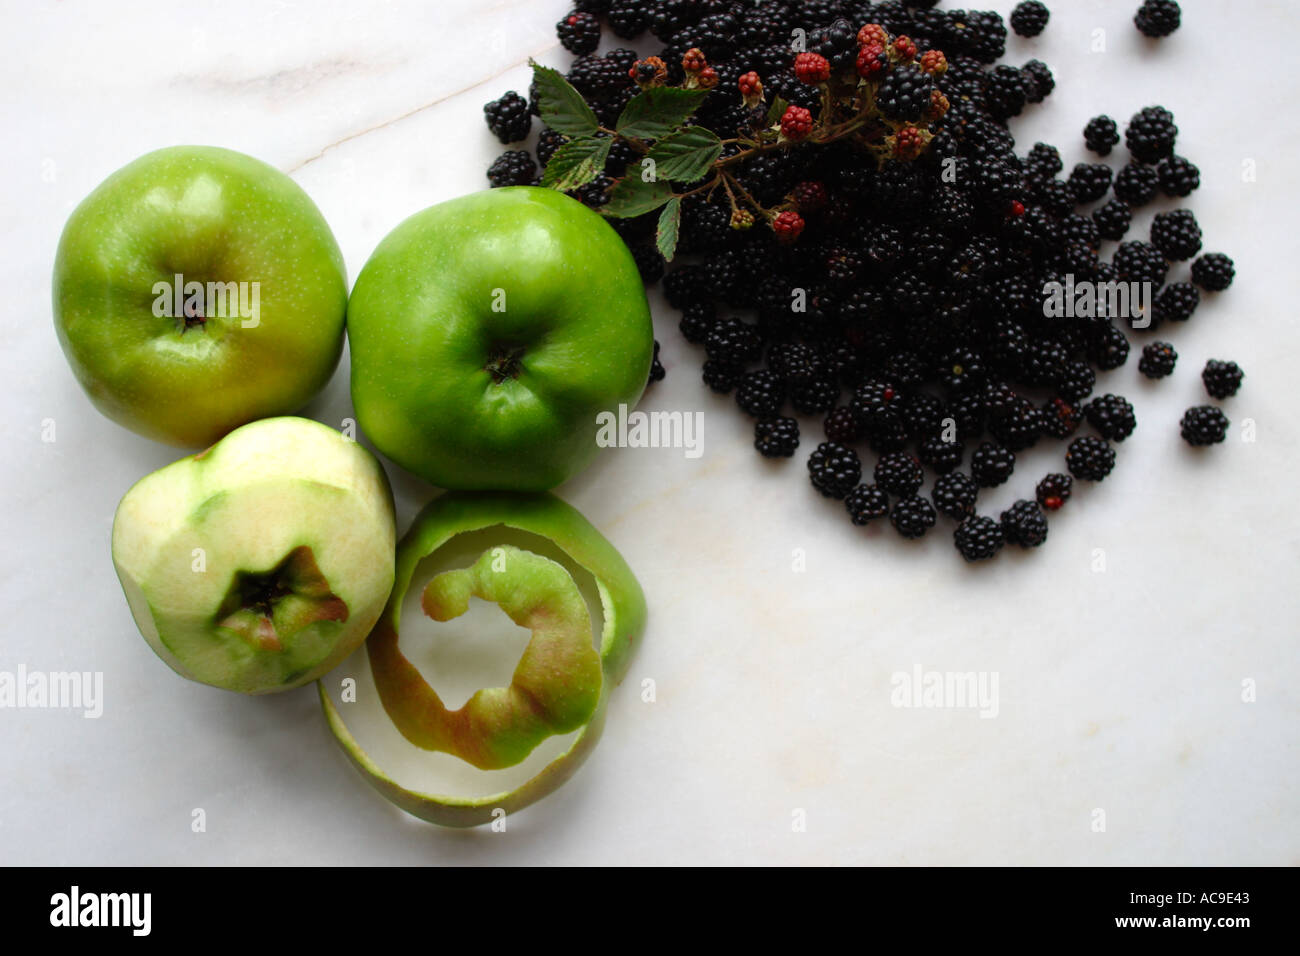 Hand picked apples and blackberries from the garden for fresh, tasty home baked pies Stock Photo